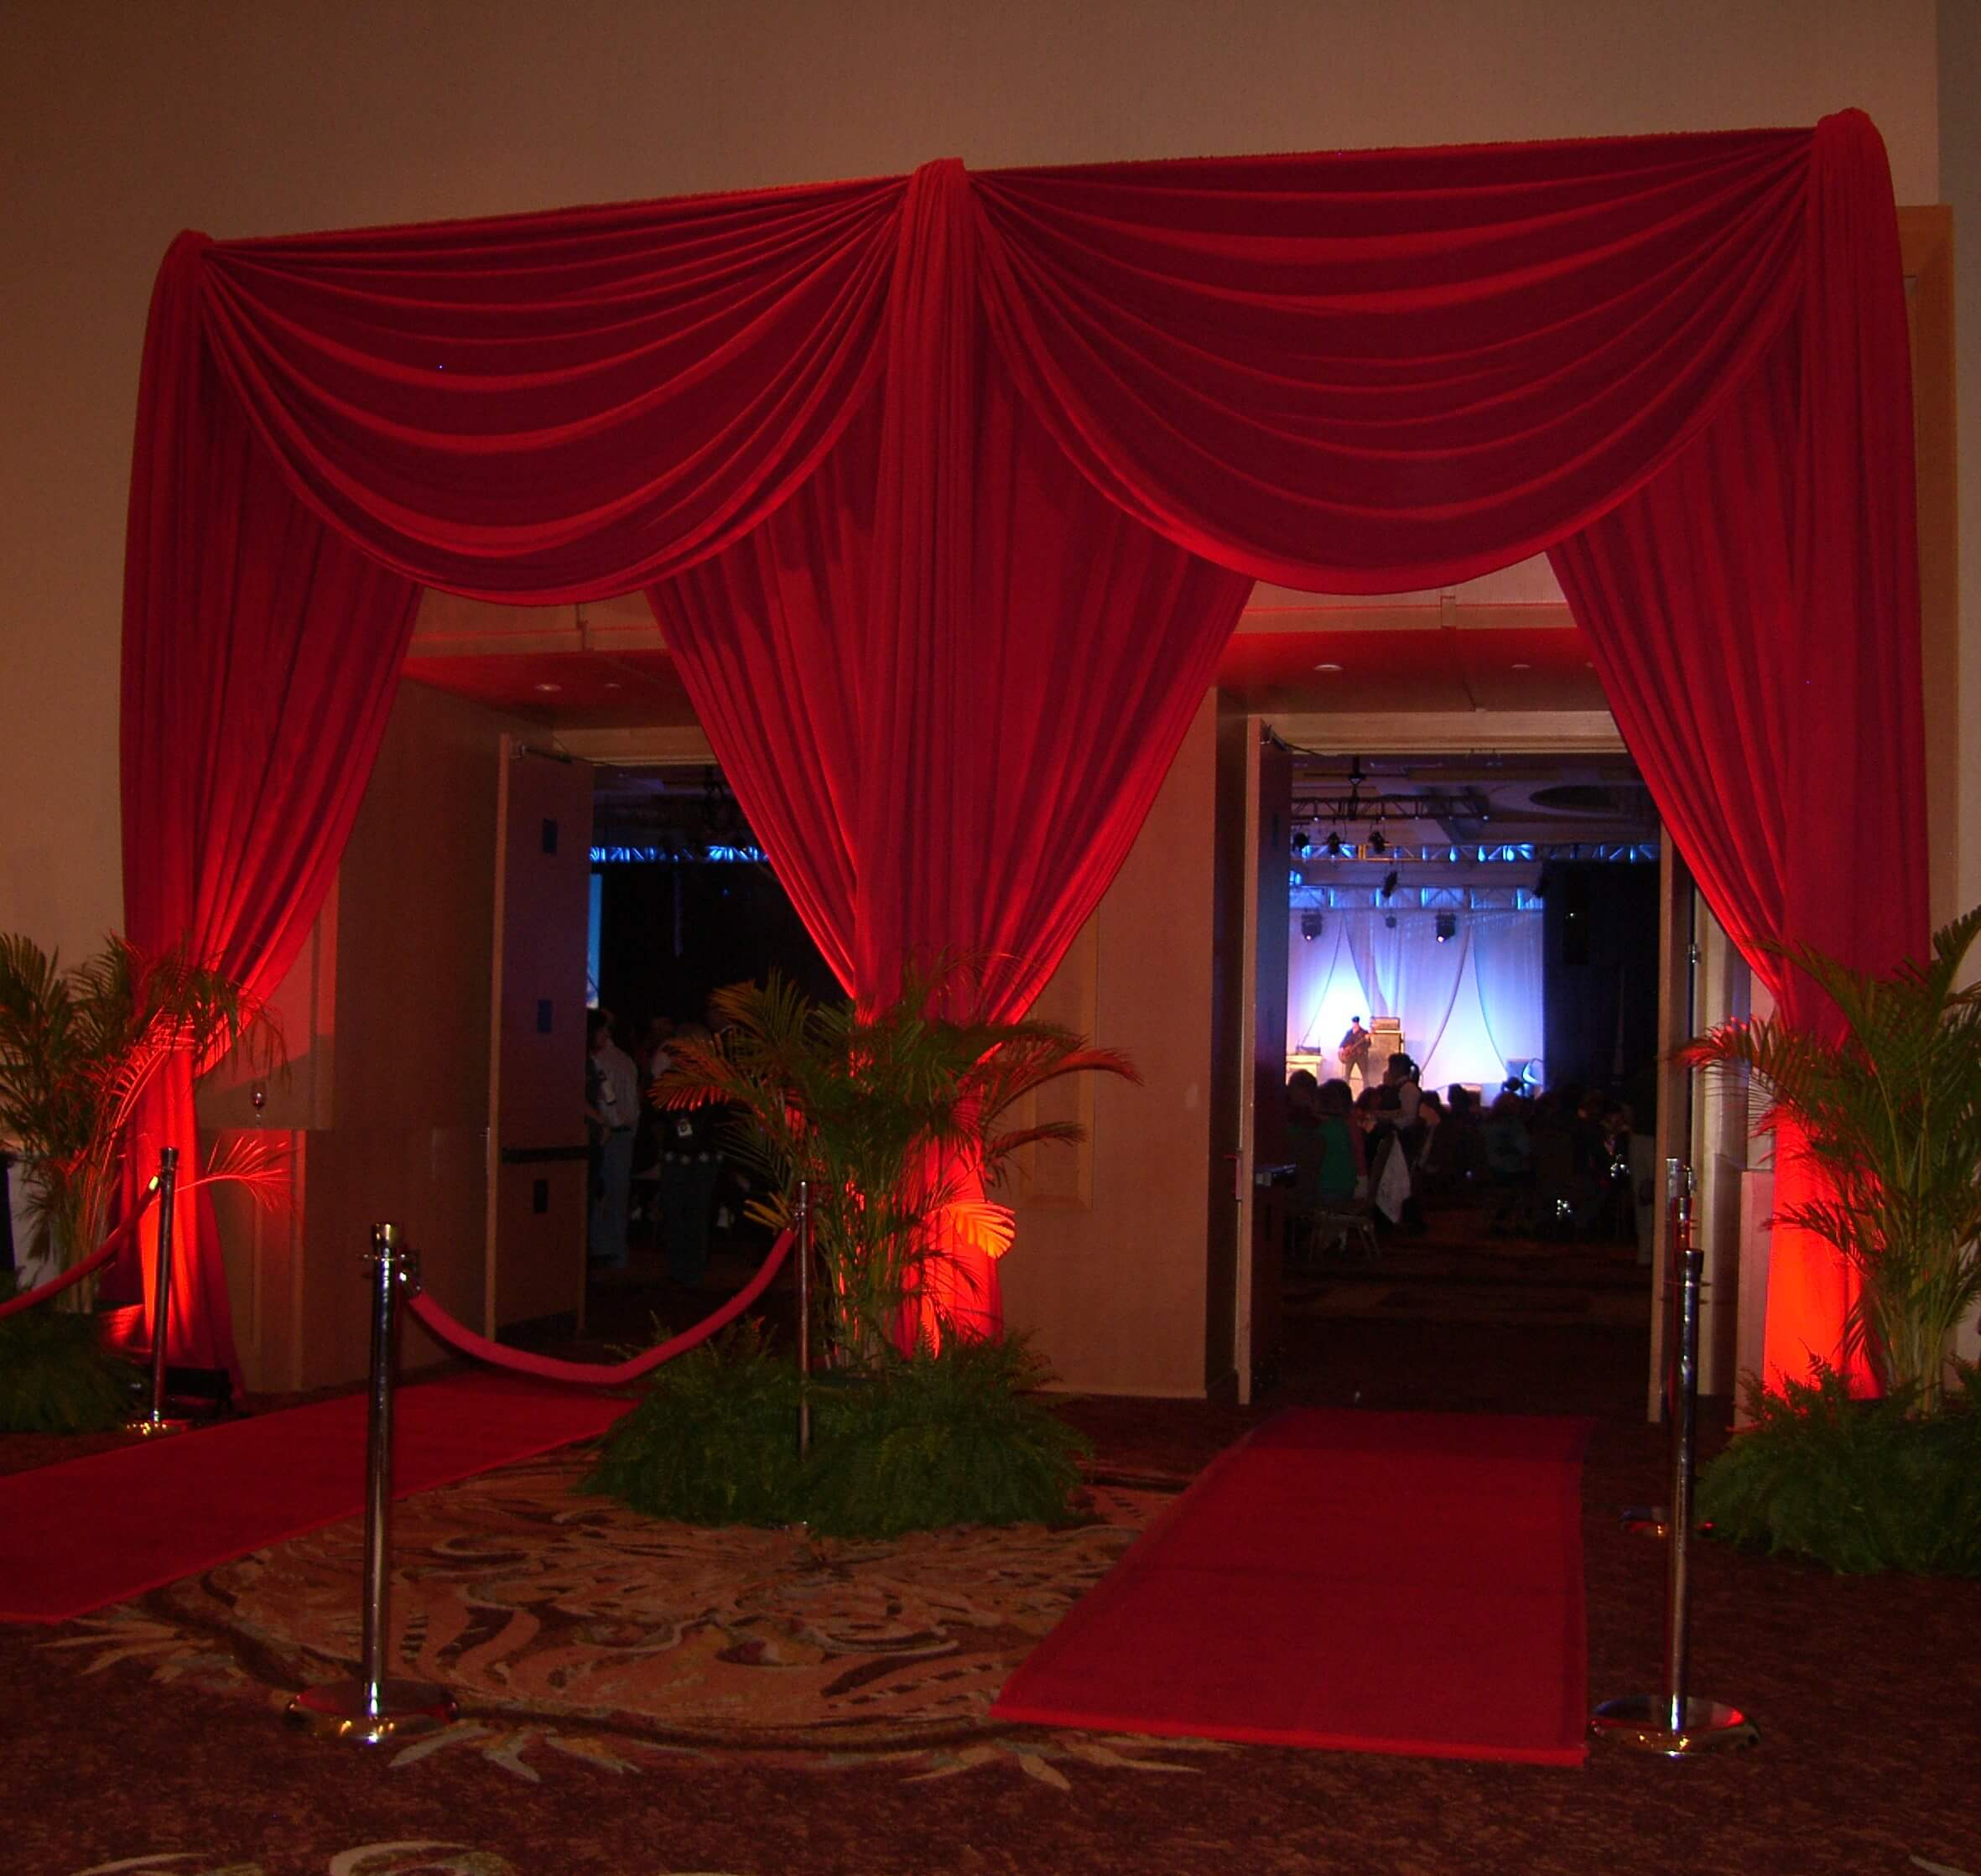 The Grand Entrance Themed Event